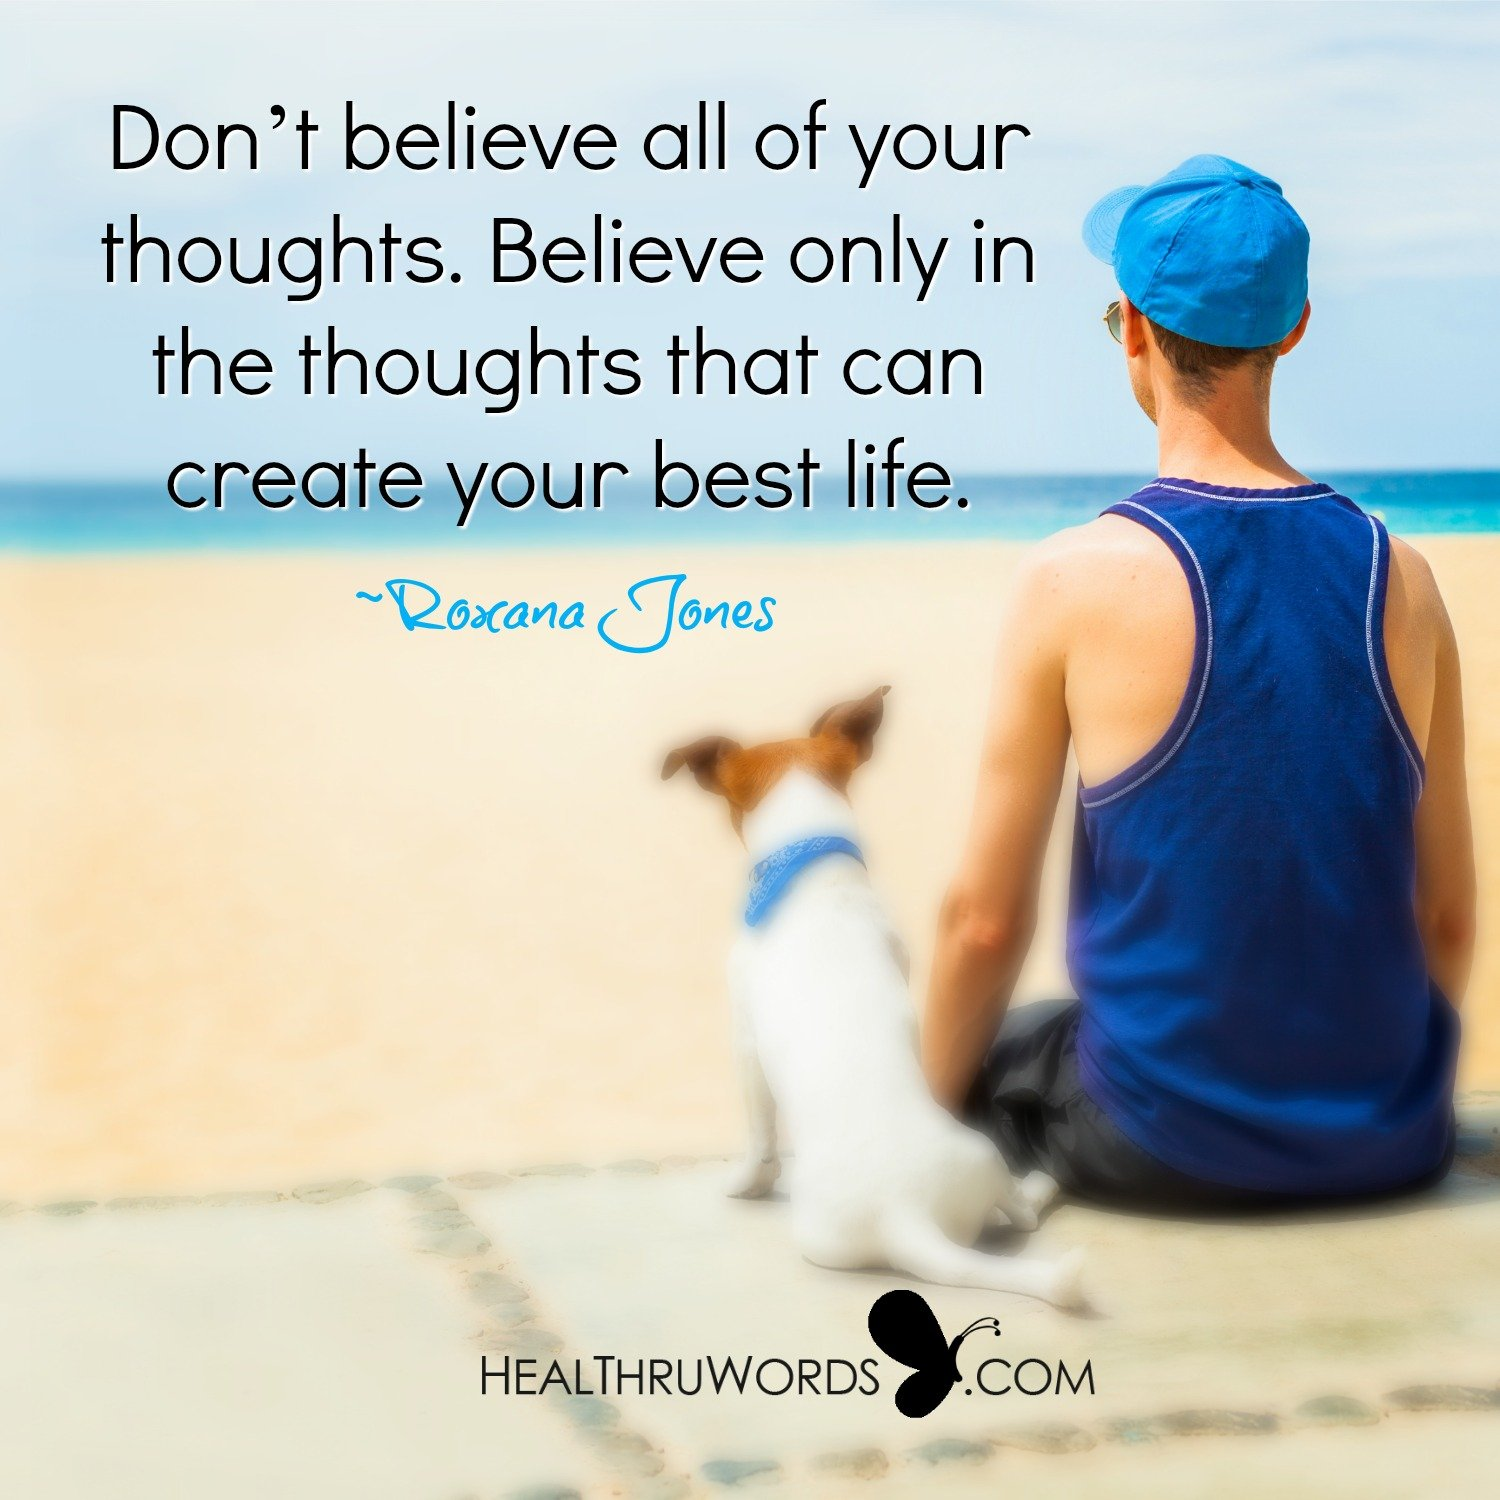 Inspirational Image: Creating through Thought